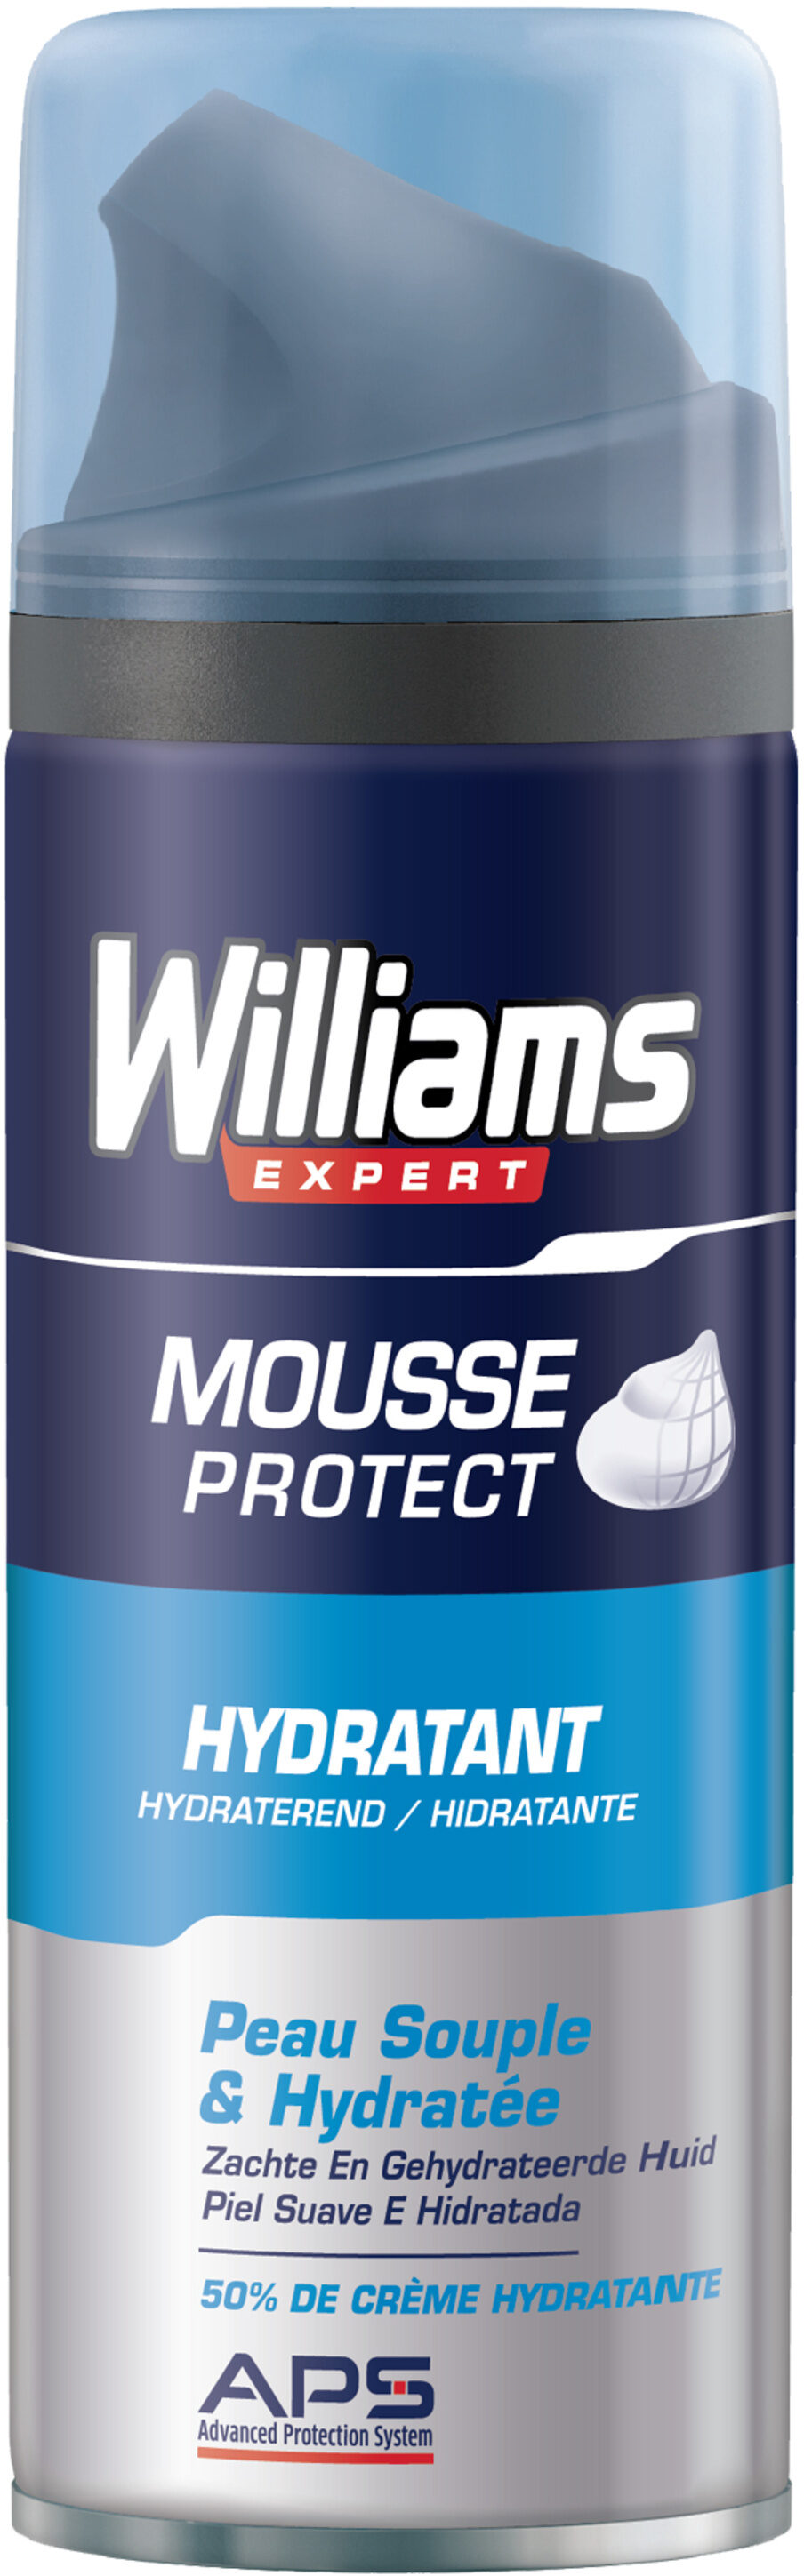 Williams Mousse à Raser Hydratant - Product - fr